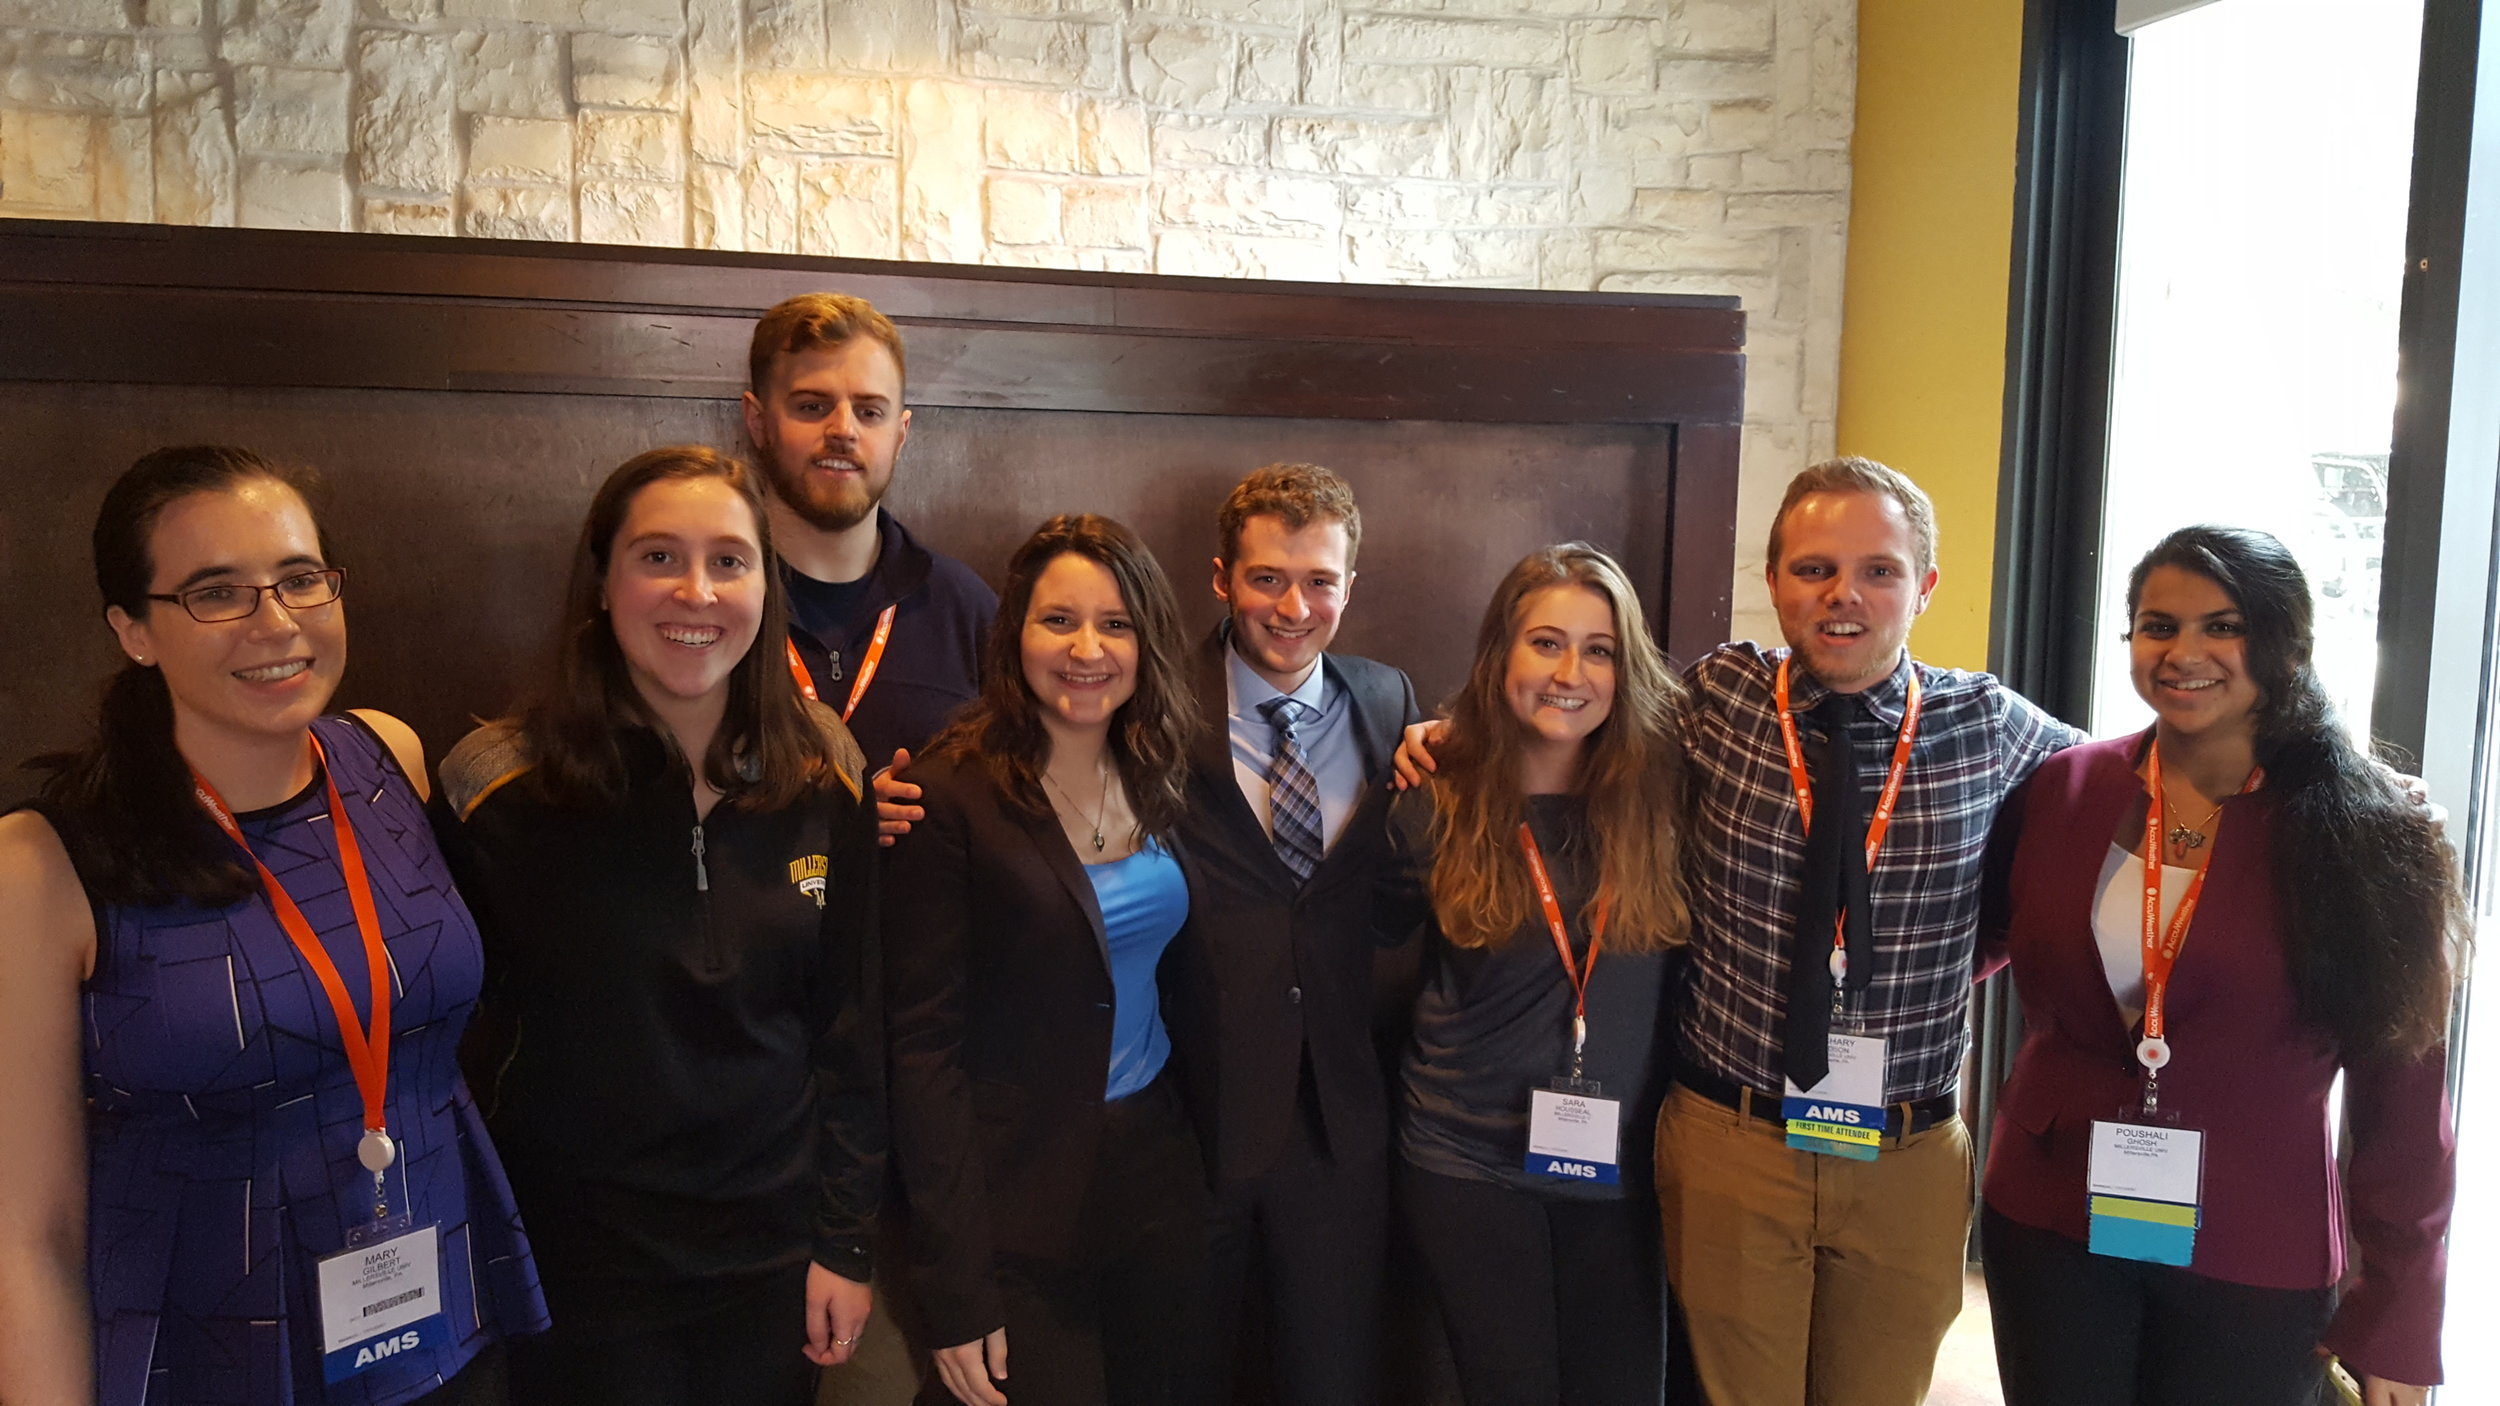 Lyndon State students network with Millersville students at the 2018 AMS Annual Meeting in Austin, TX